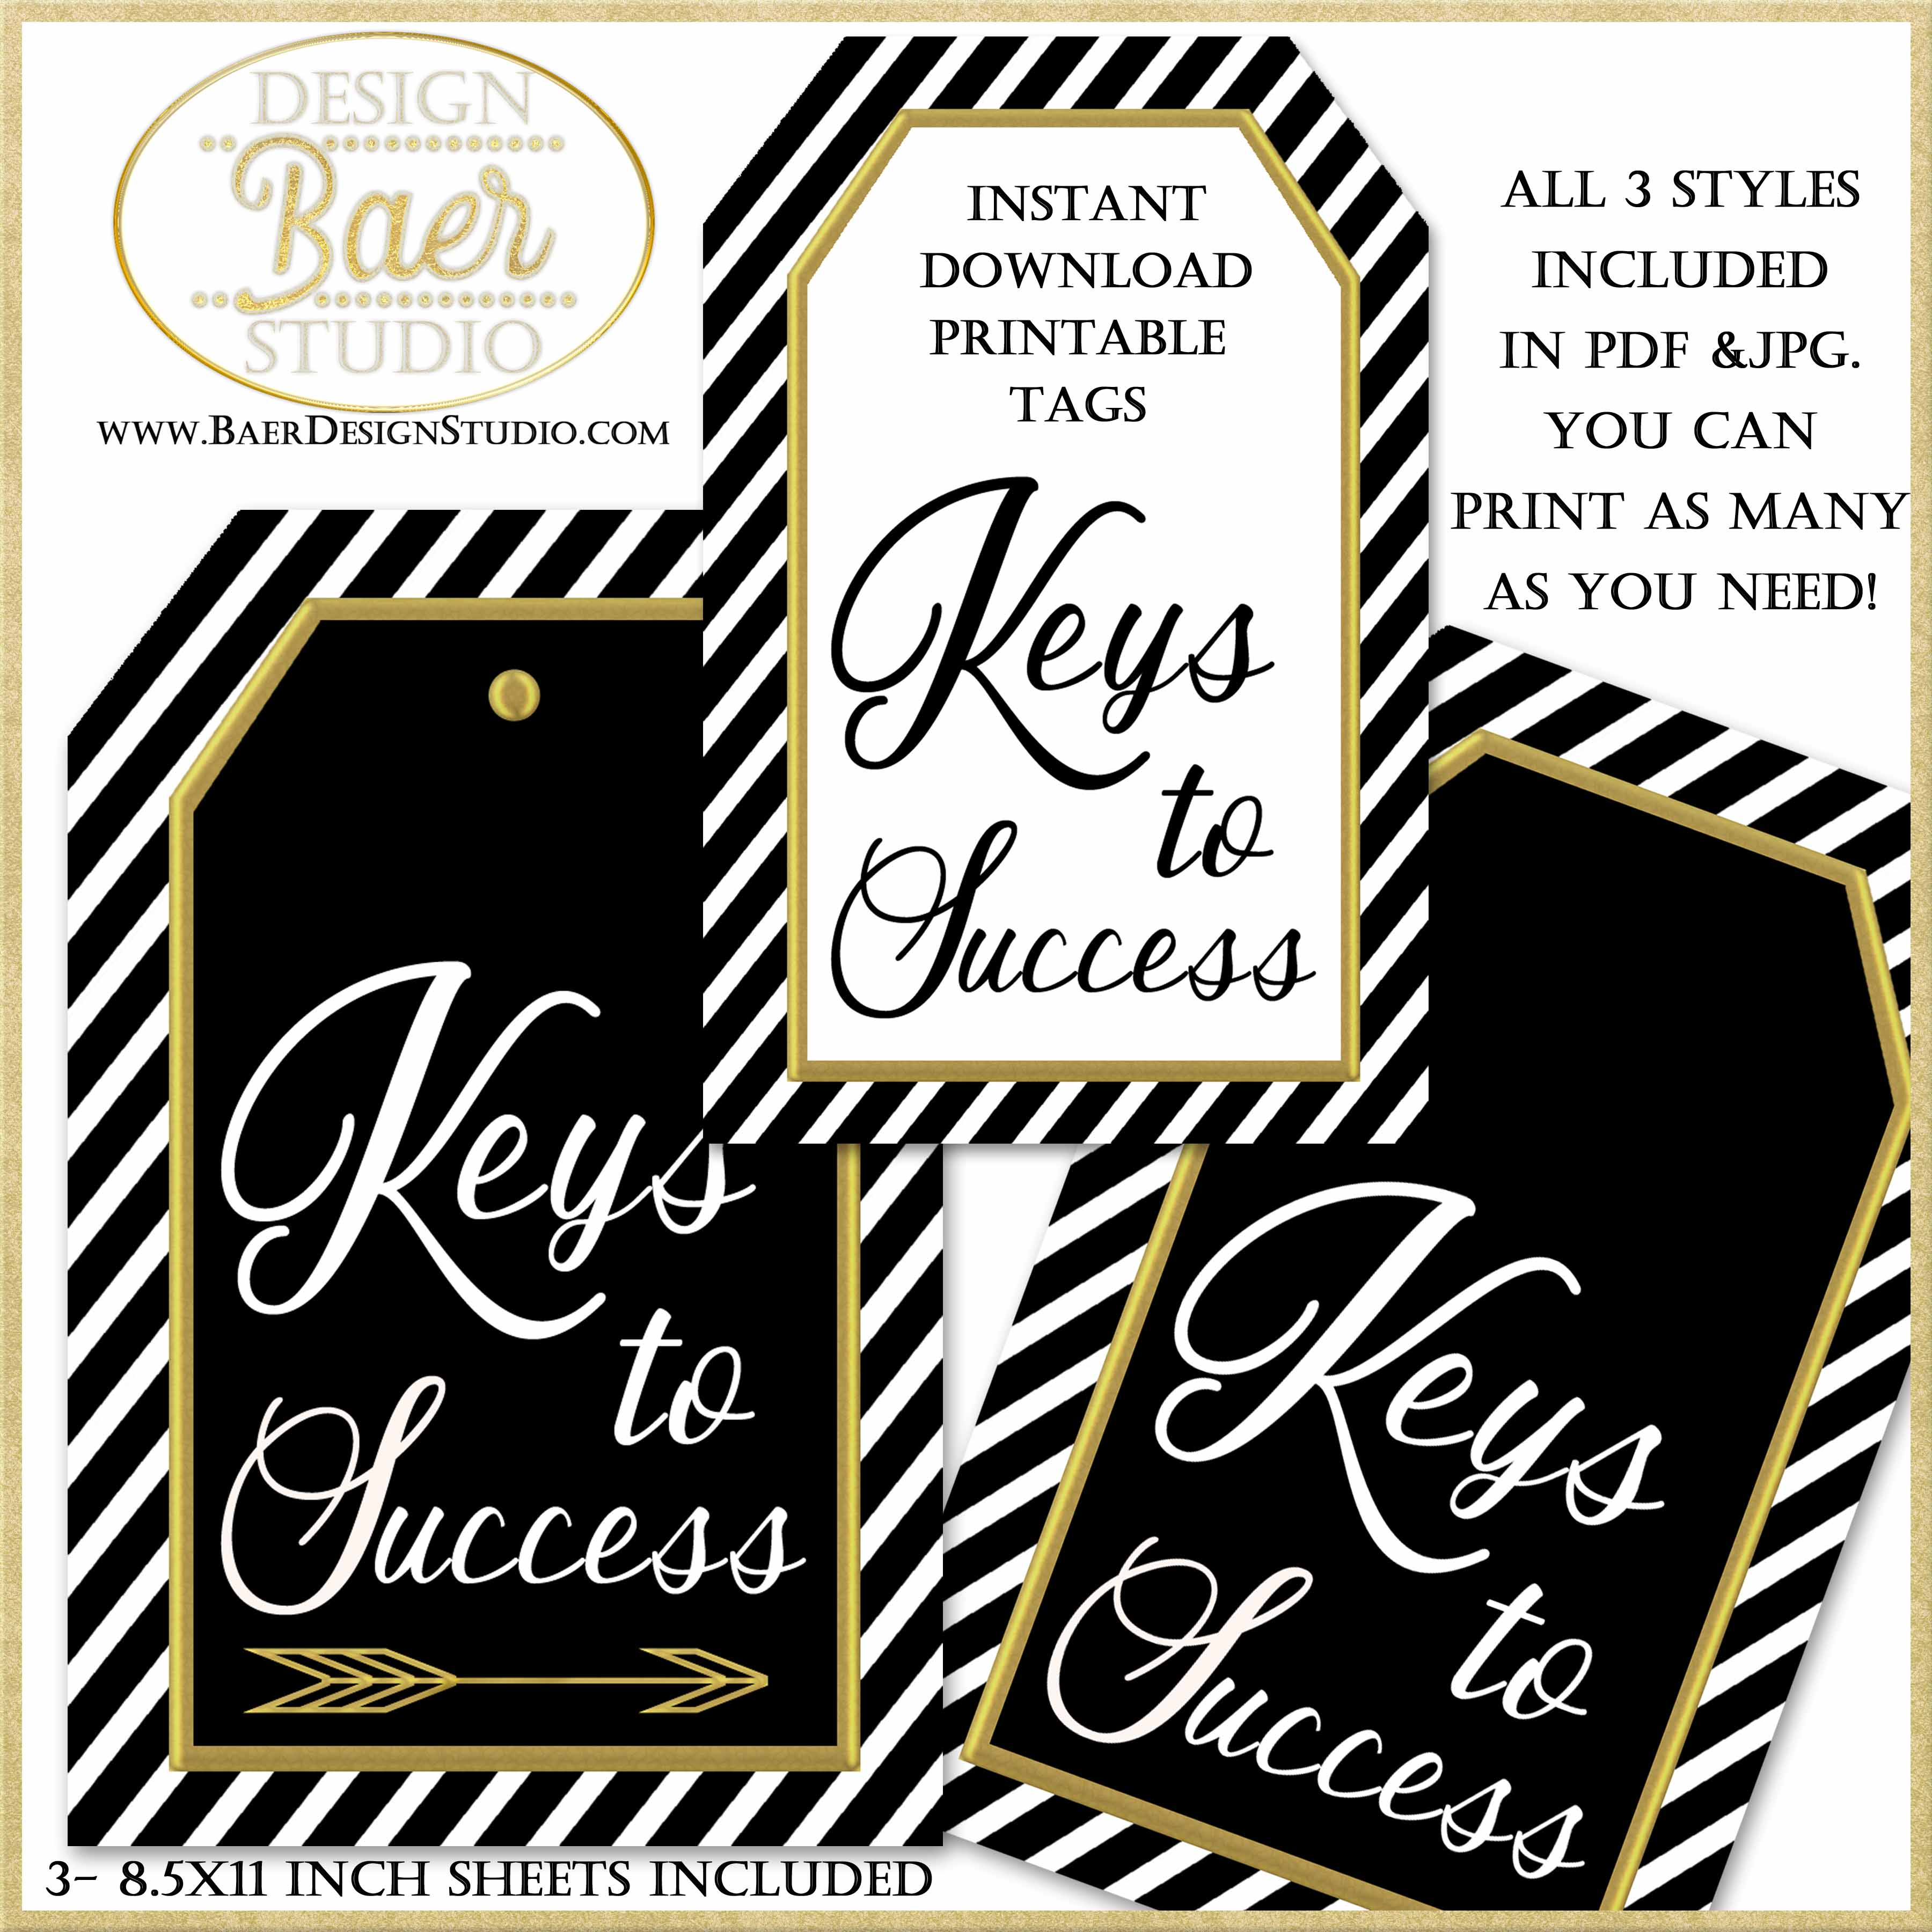 Keys To Success For Graduation Party Display Printable Tags